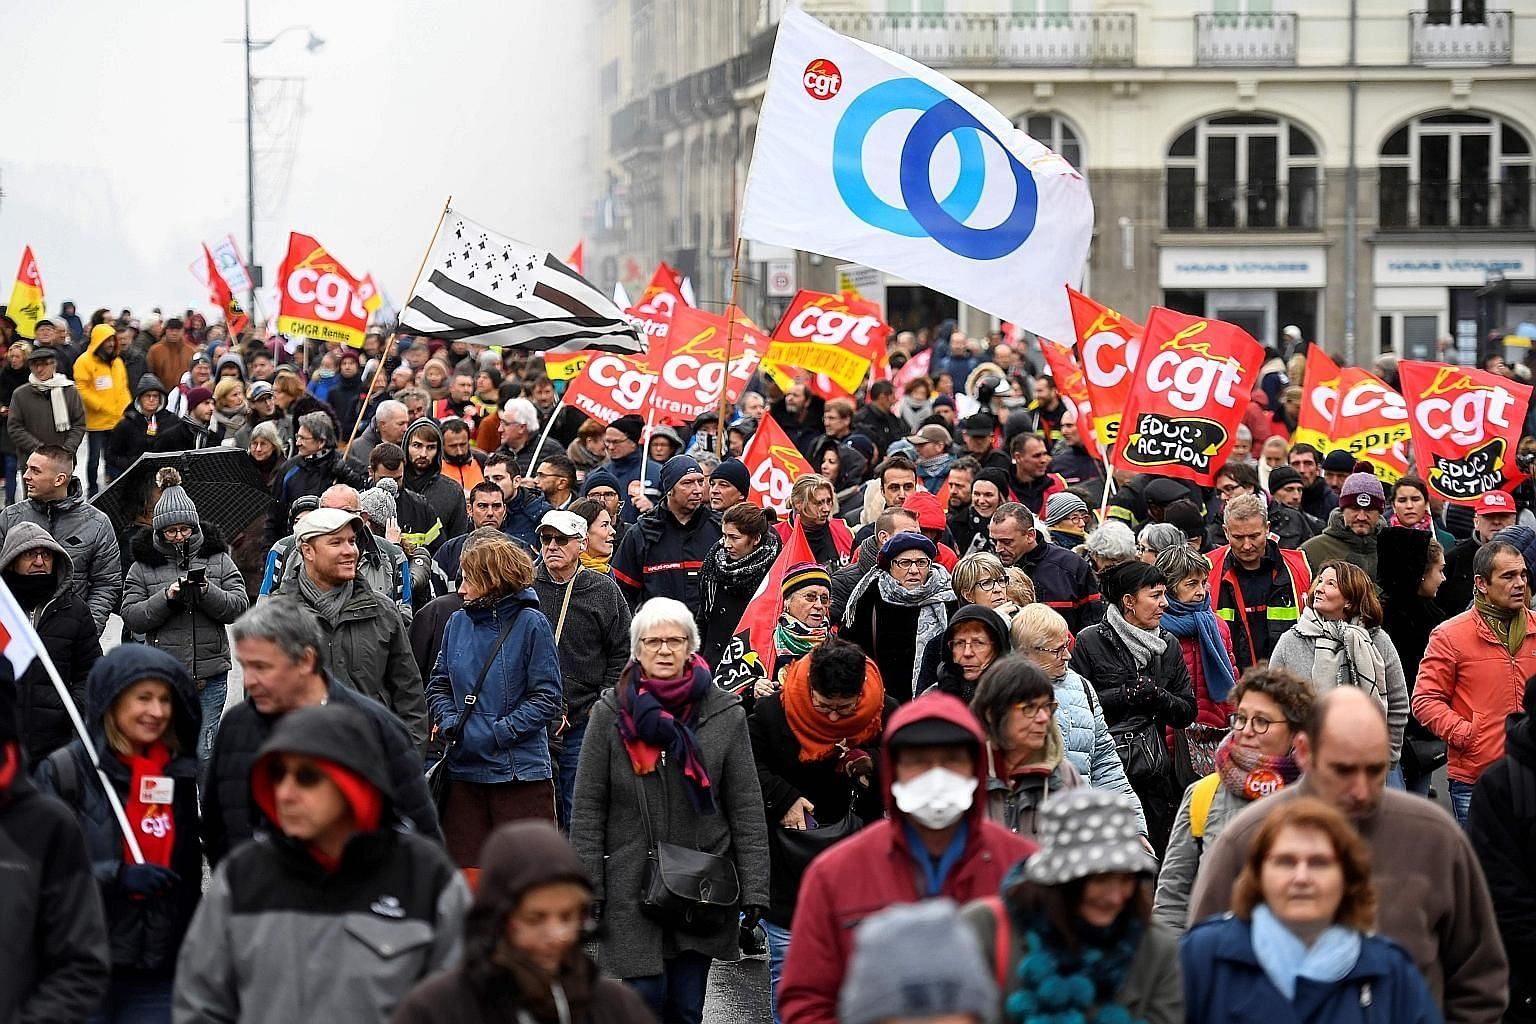 A demonstration by French public-sector workers in Rennes yesterday, the sixth day of massive strike action across the country over plans by the government to overhaul the pension system. PHOTO: AGENCE FRANCE-PRESSE